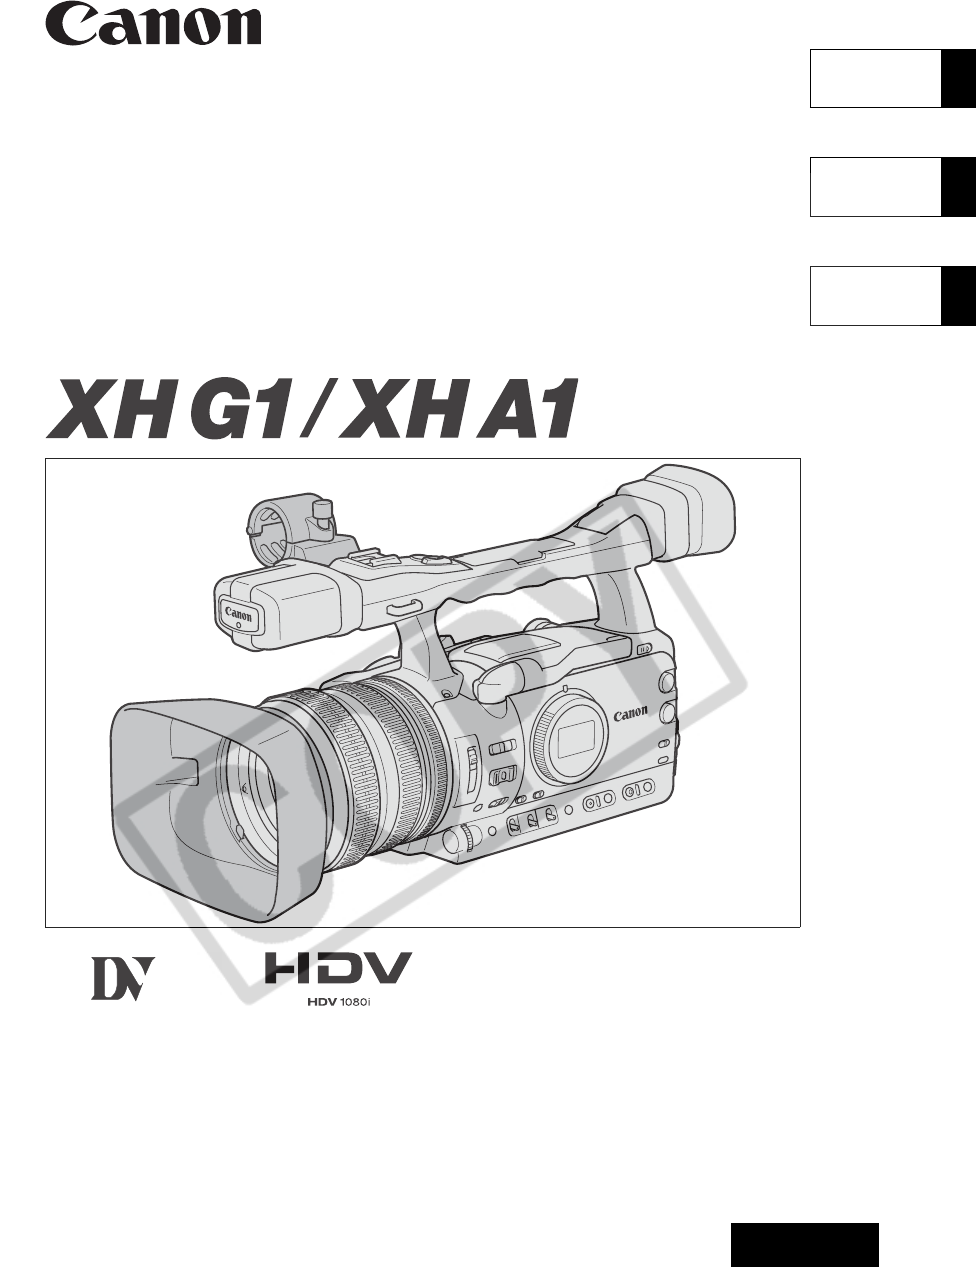 Download Canon XH A1 Instruction Manual